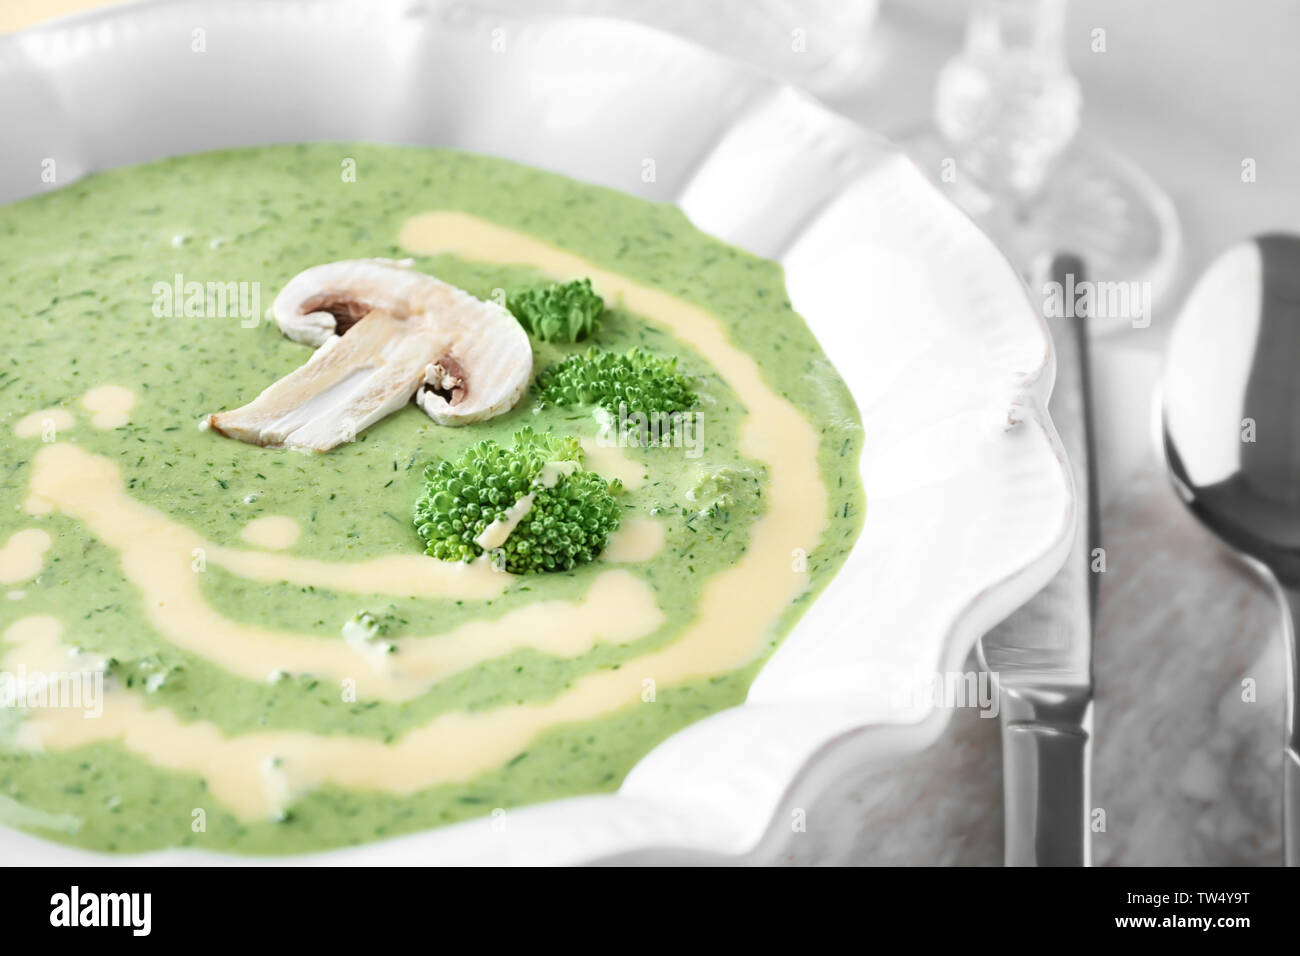 Plate with delicious broccoli cheese soup on table, closeup - Stock Image